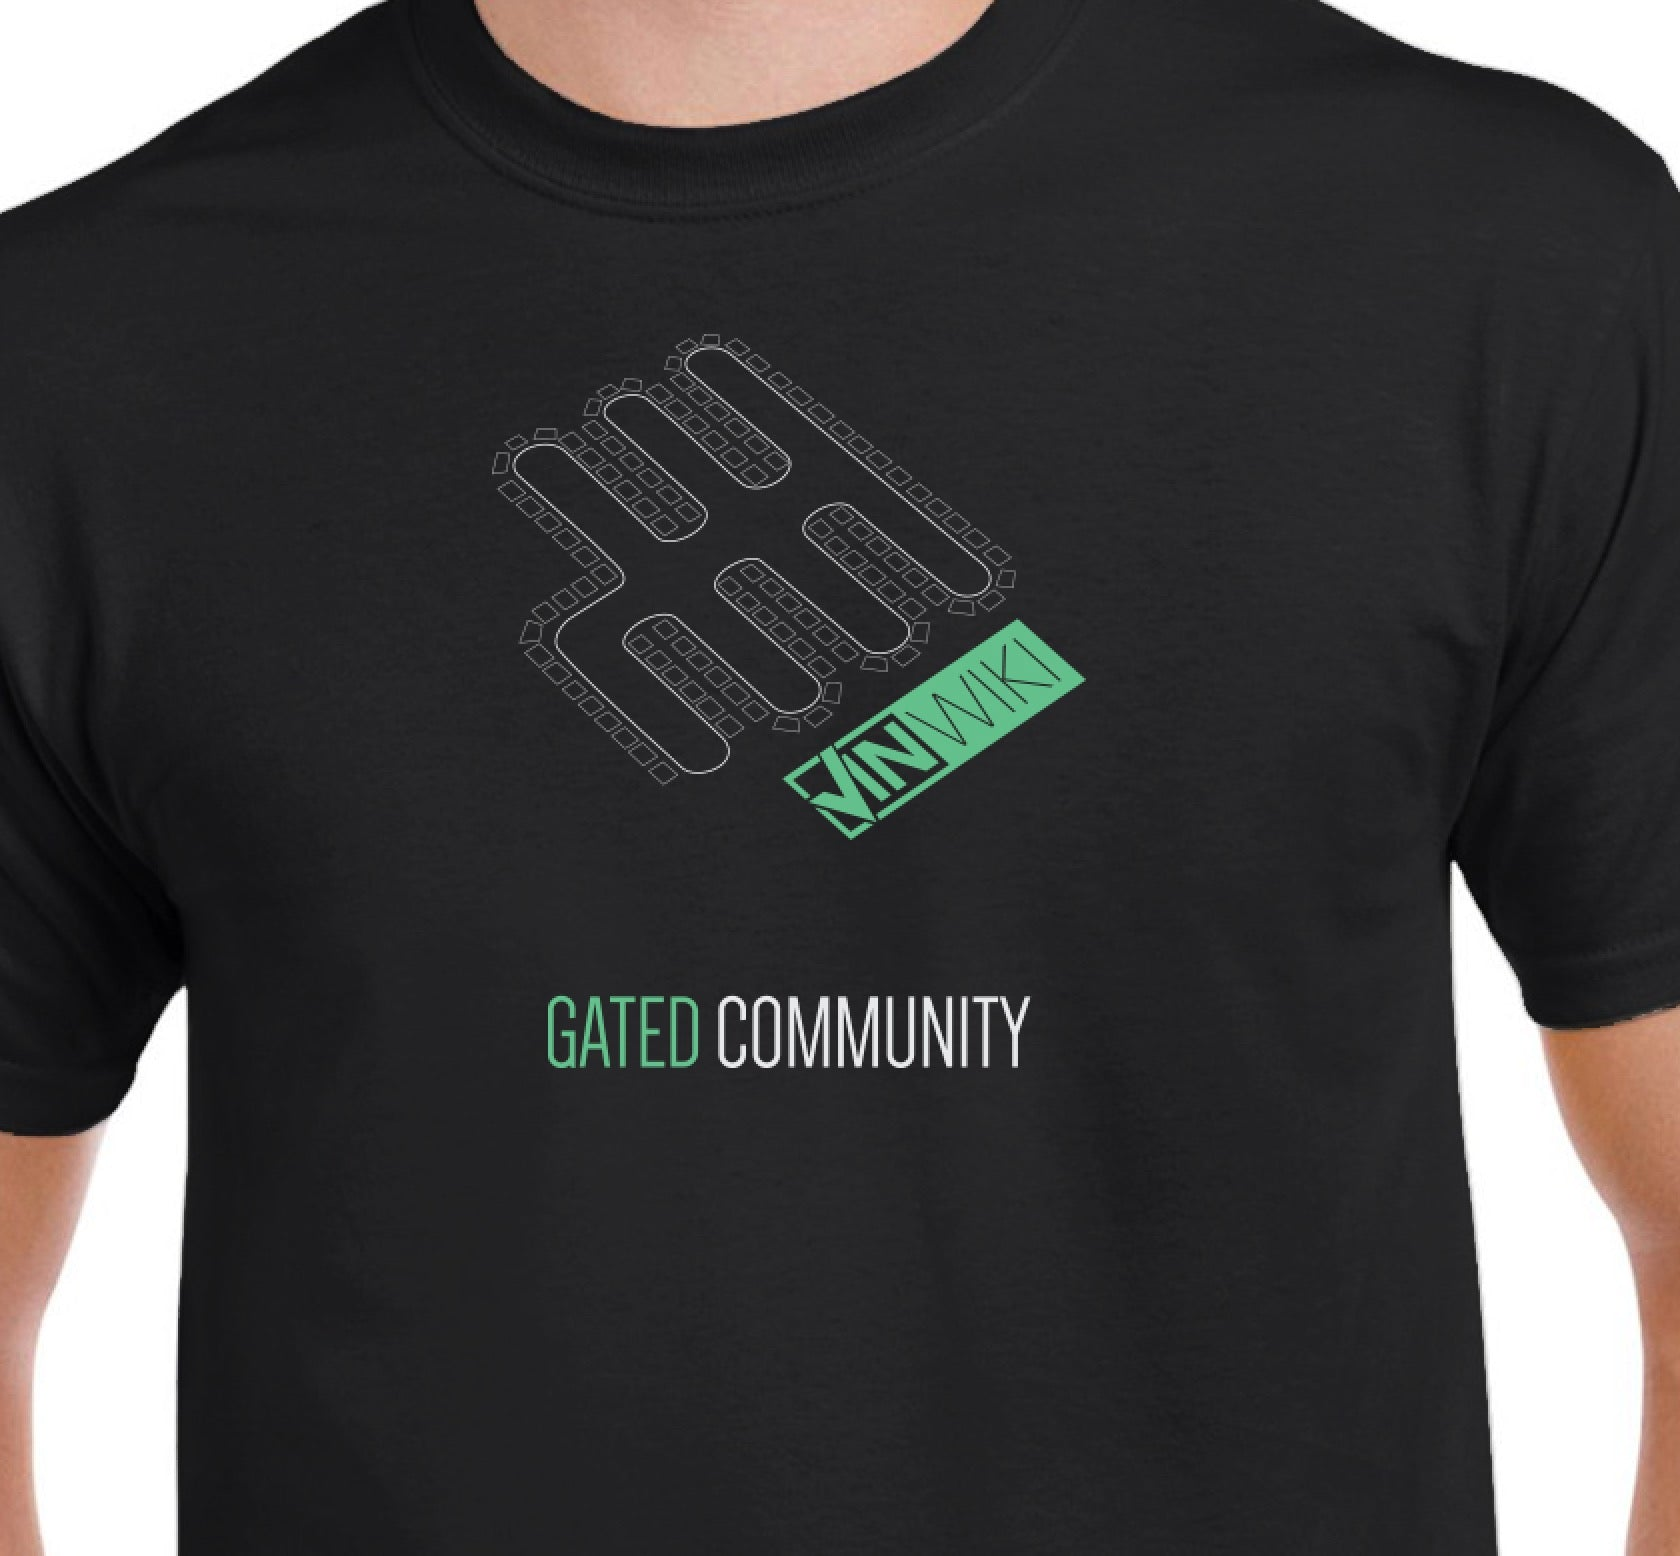 Gated Community Tee – VINwiki